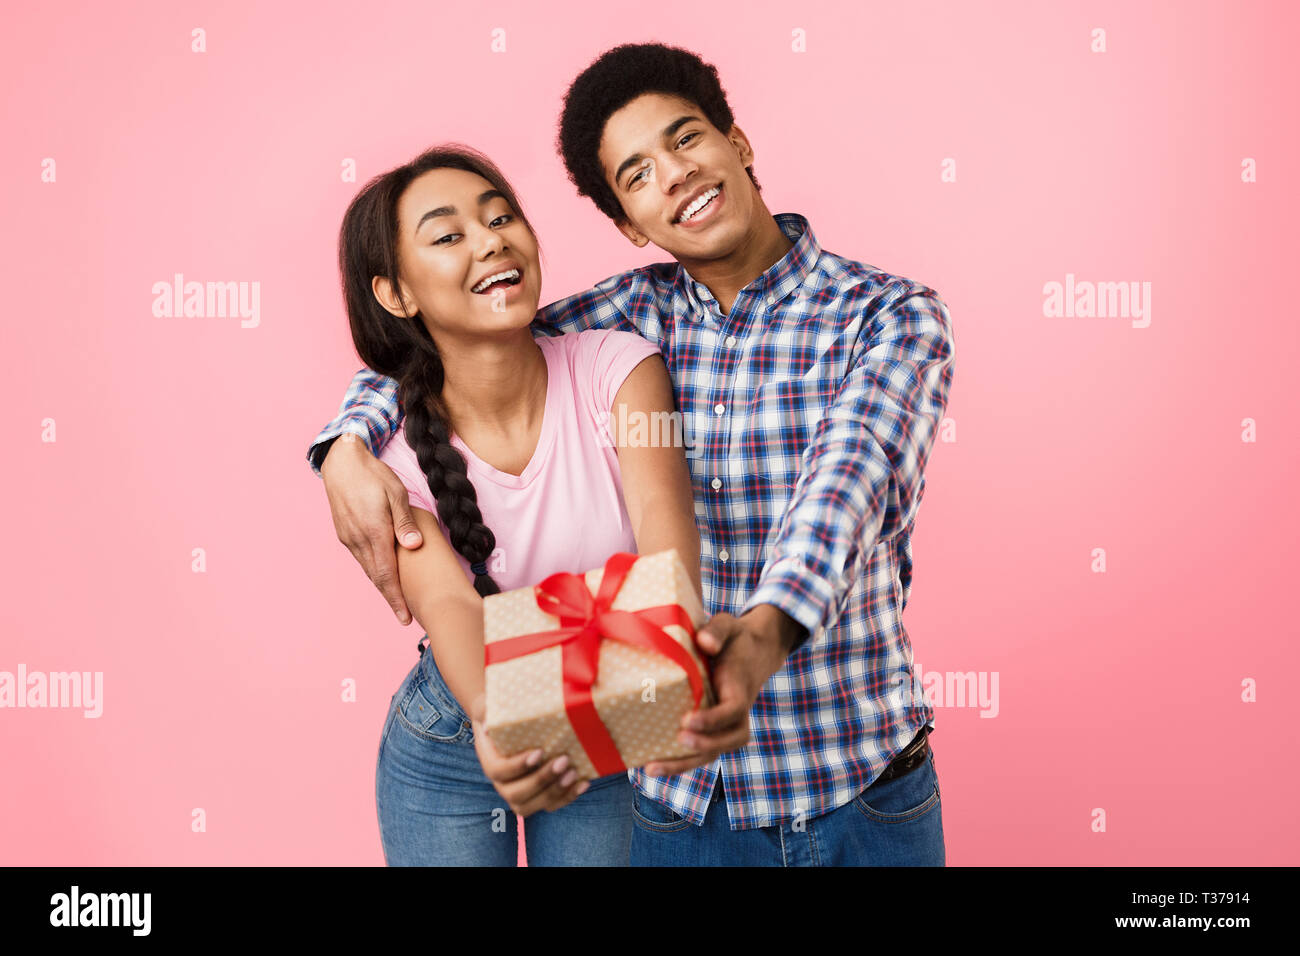 Teenage couple rejoicing, stretching present box to camera over pink background - Stock Image